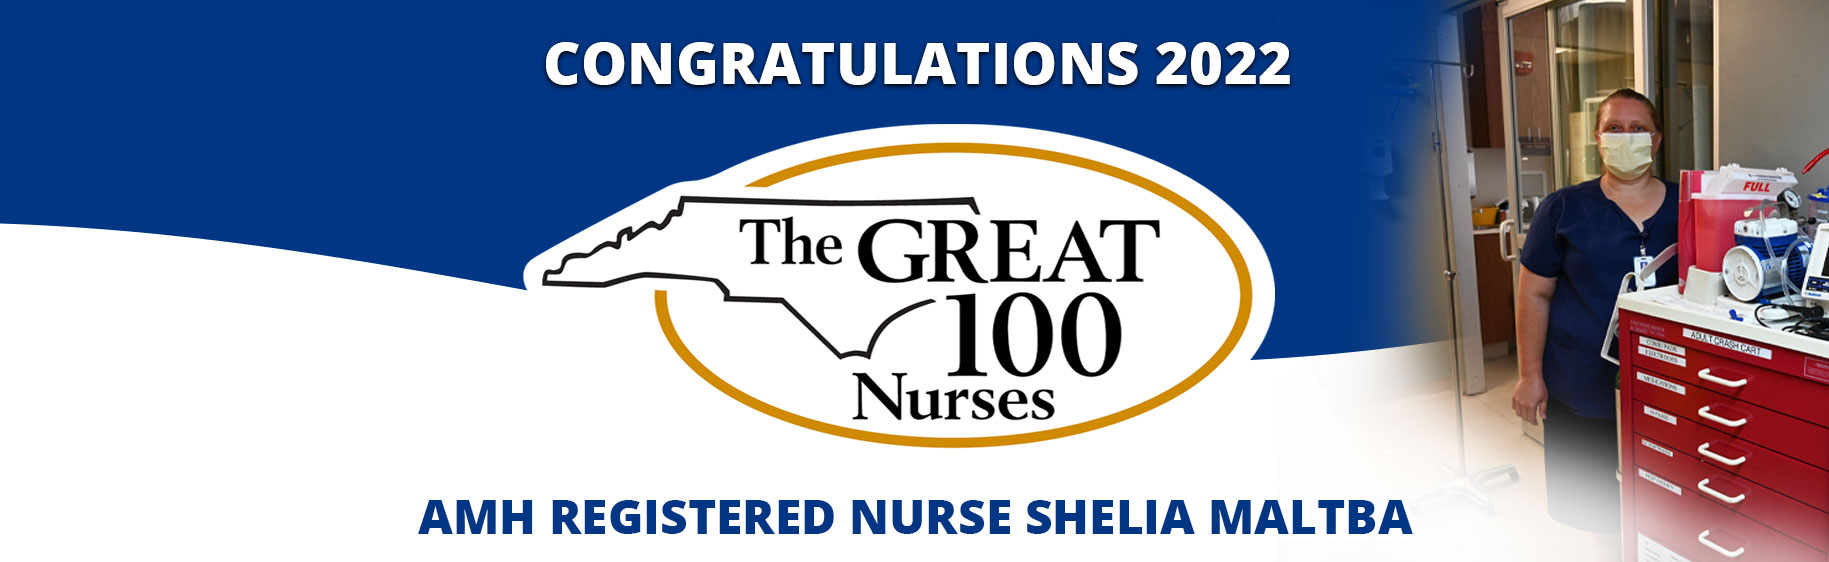 Congratulations to AMH registered nurses Kina Jones and Kelly Sheets for being named 2021 Great 100 Nurses!